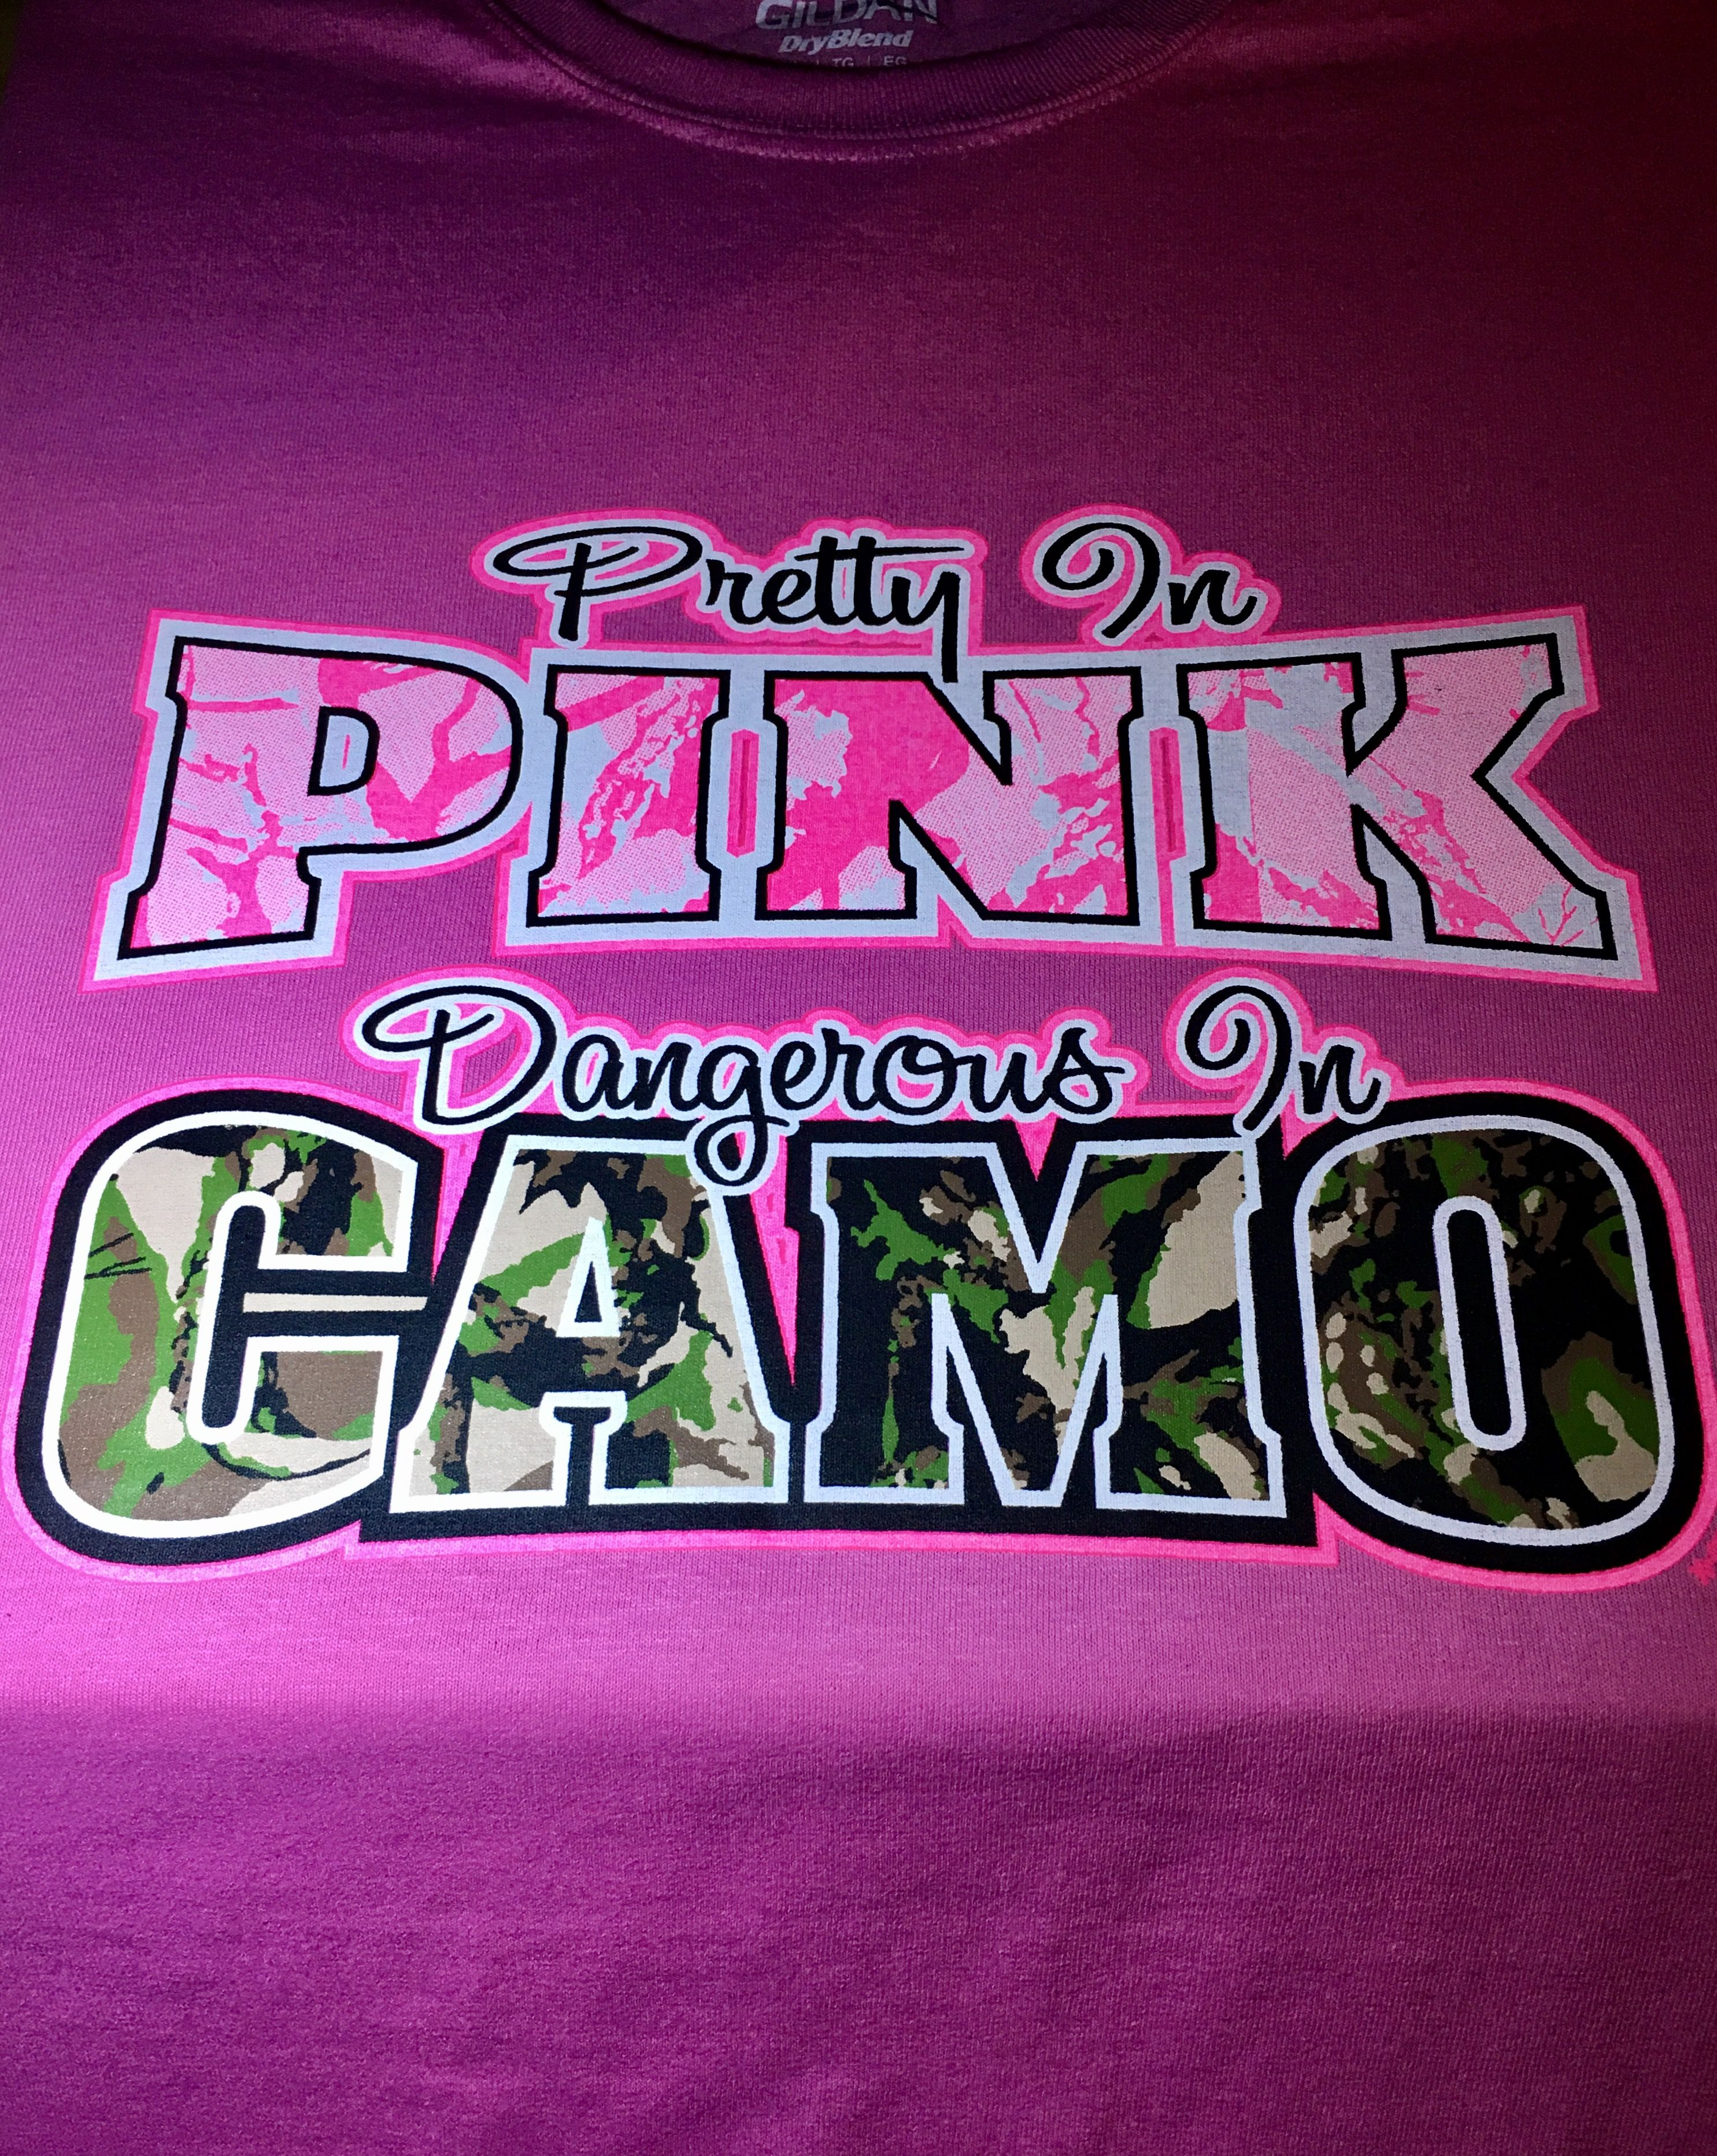 fb20ee6a9a Pretty In Pink Dangerous in Camo Custom T-shirt. Customize to your favorite  colors. Click visit to visit our website and purchase.